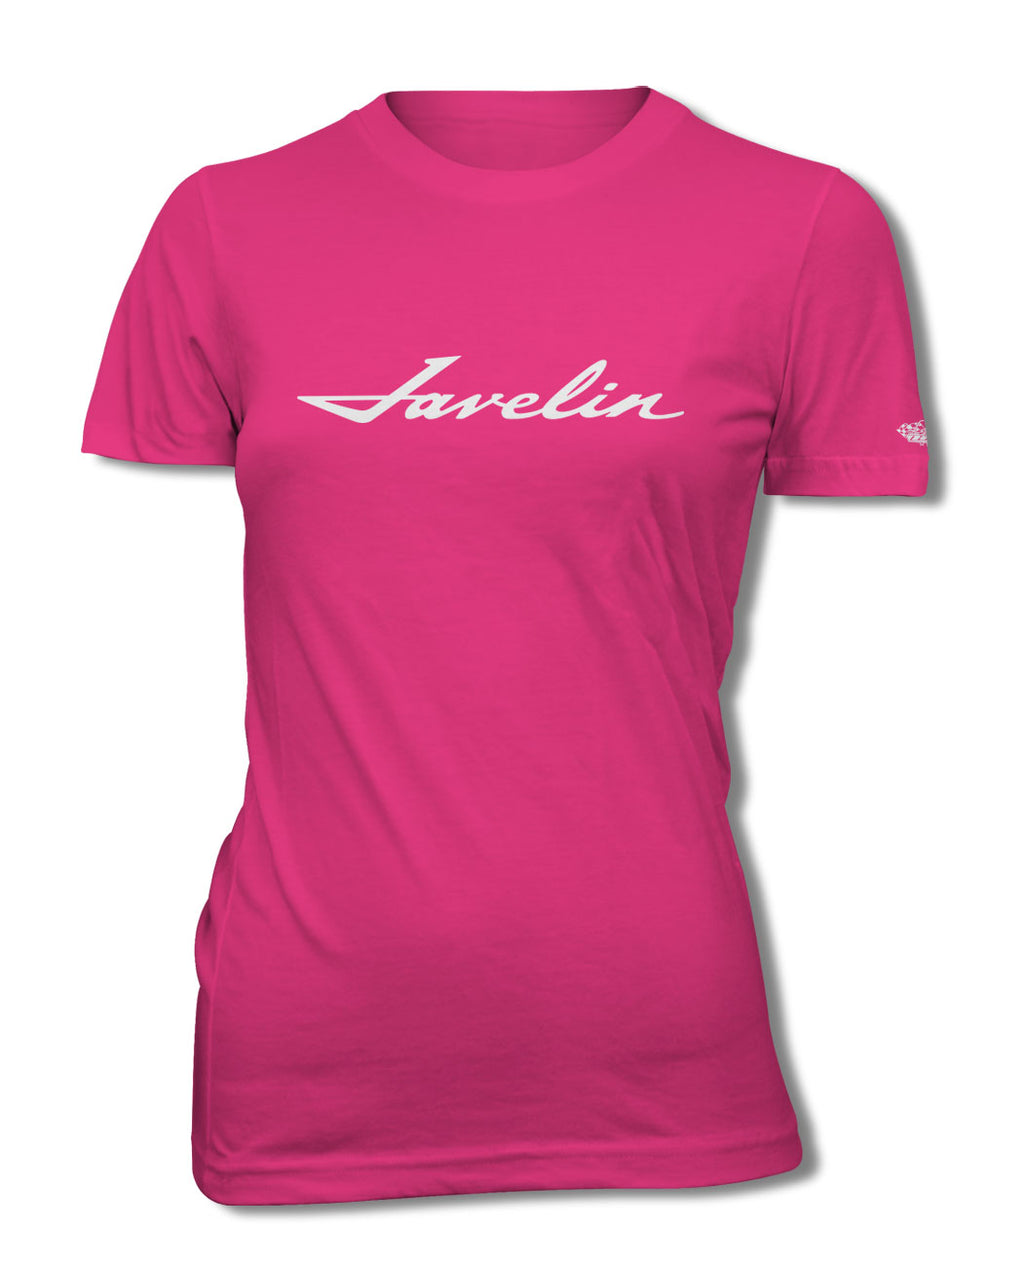 1968 - 1974 AMC Javelin Emblem T-Shirt - Women - Emblem